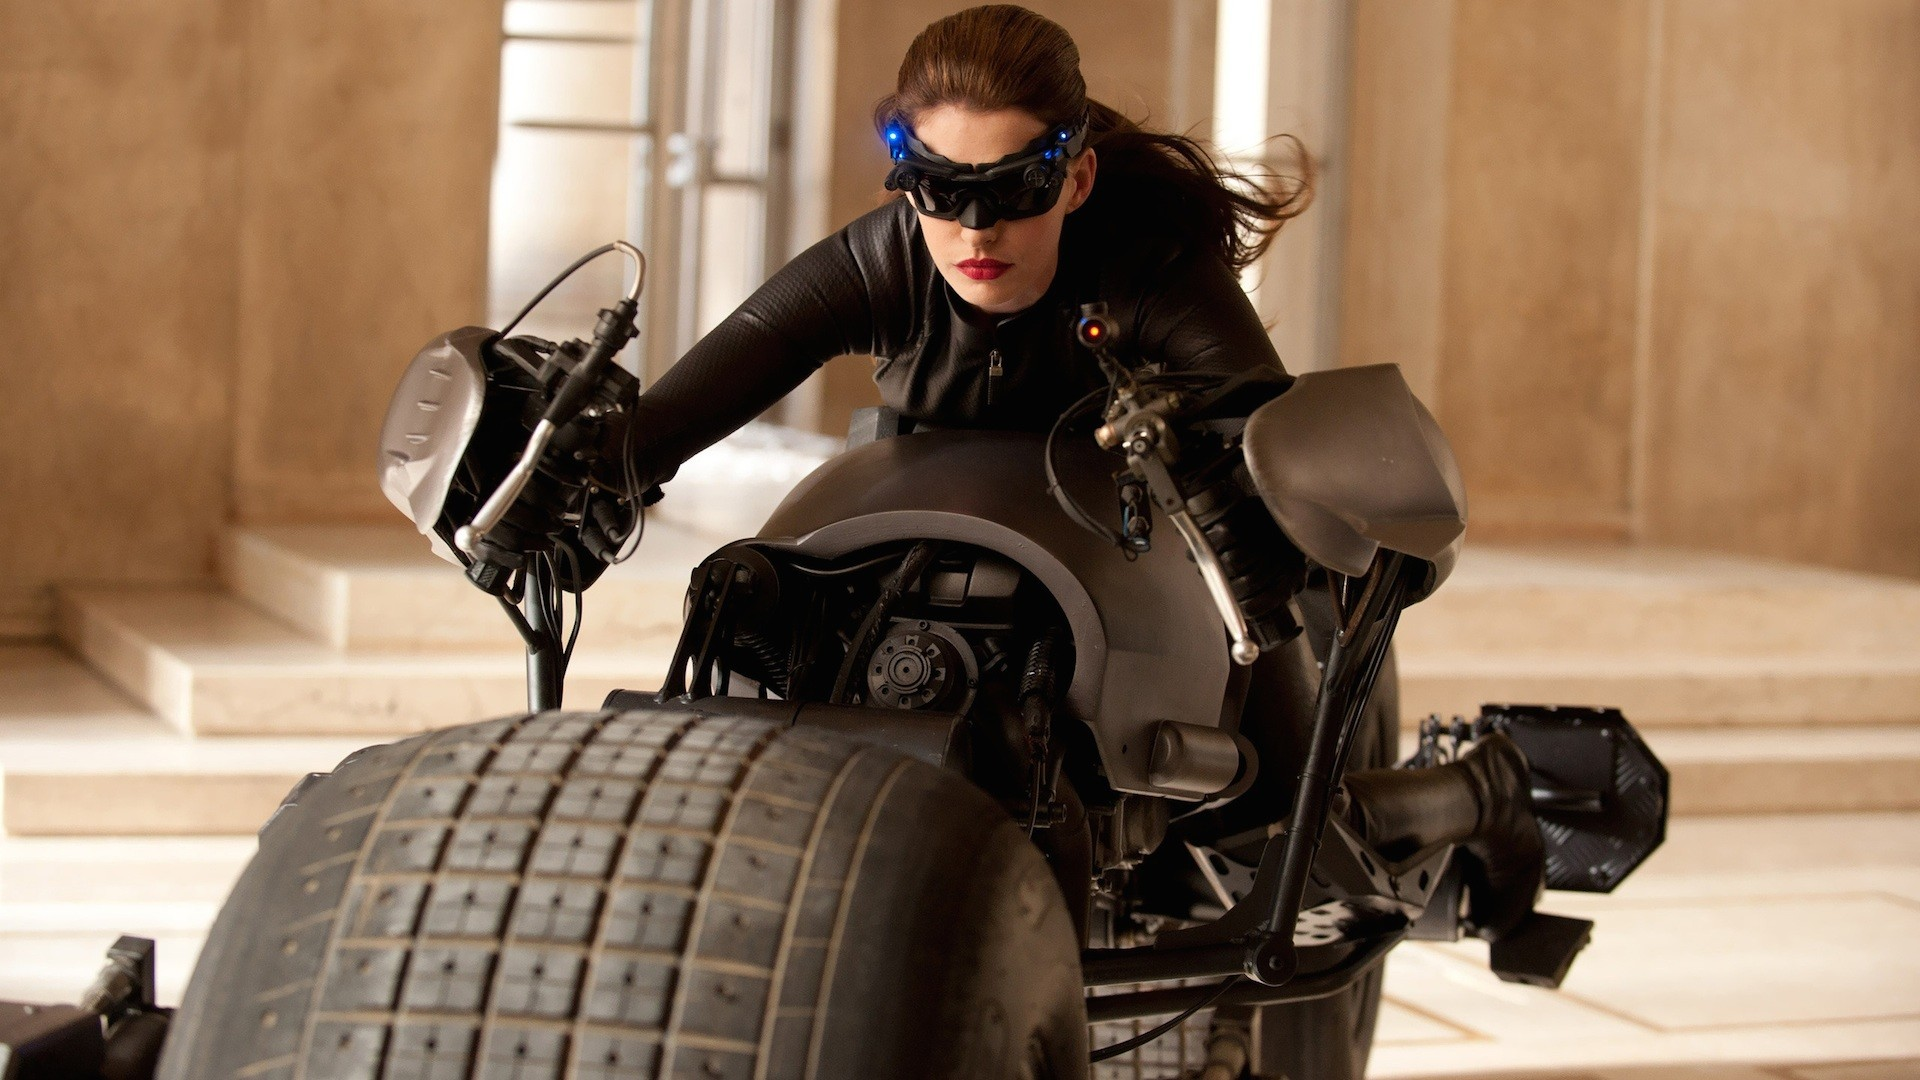 Anne Hathaway – Catwoman Wallpaper – 9